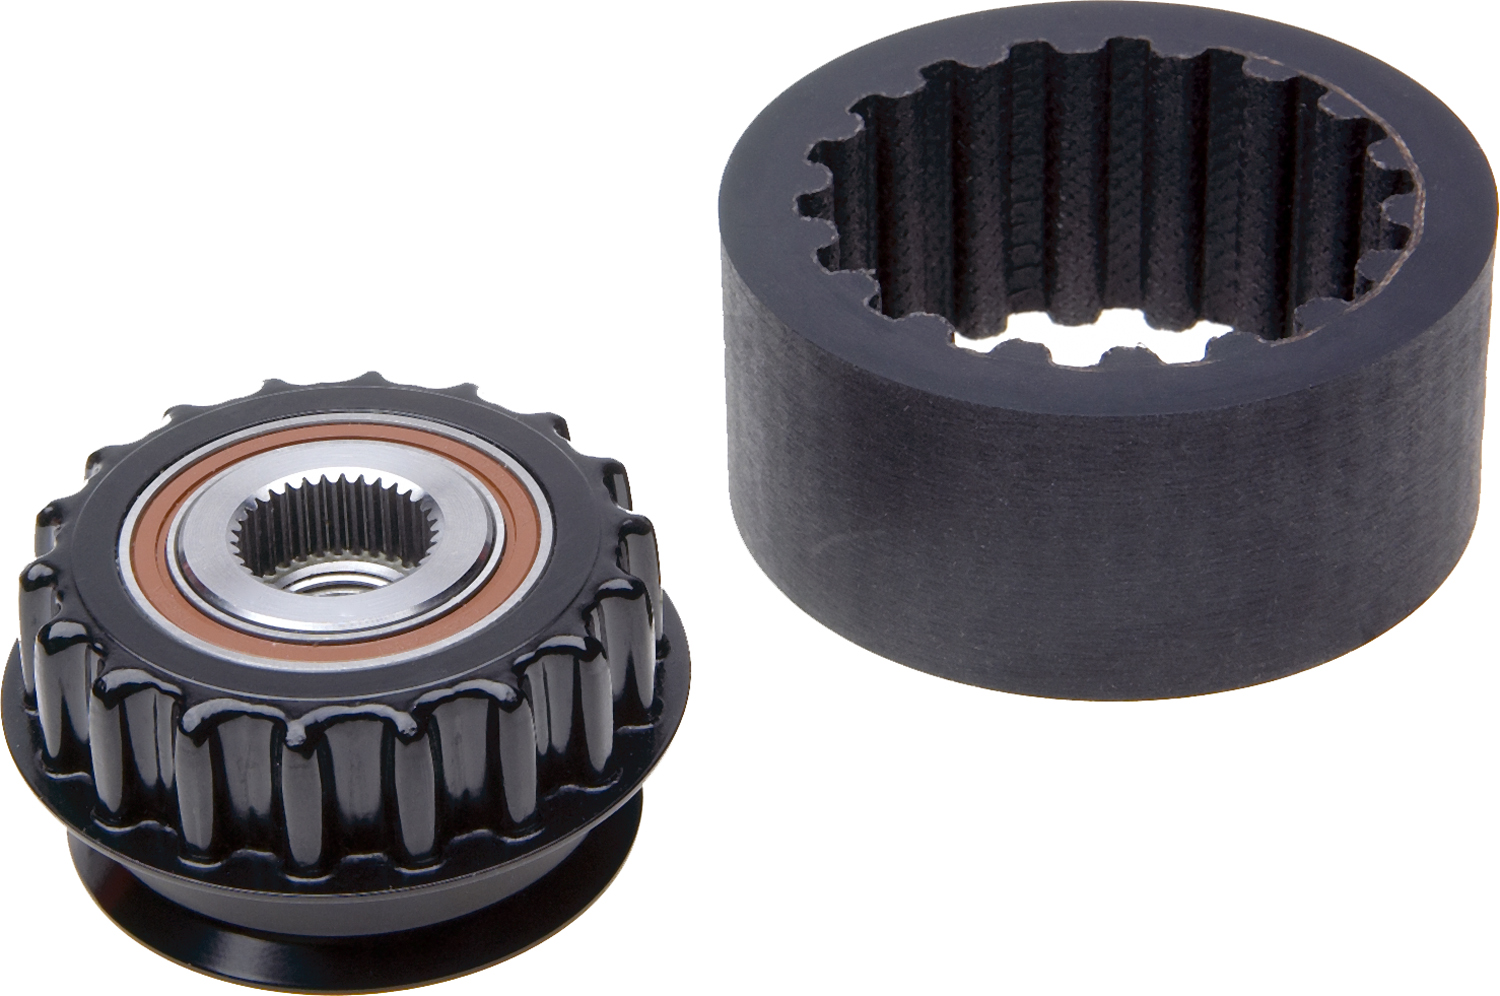 Alternator Coupler and Coupling Kit